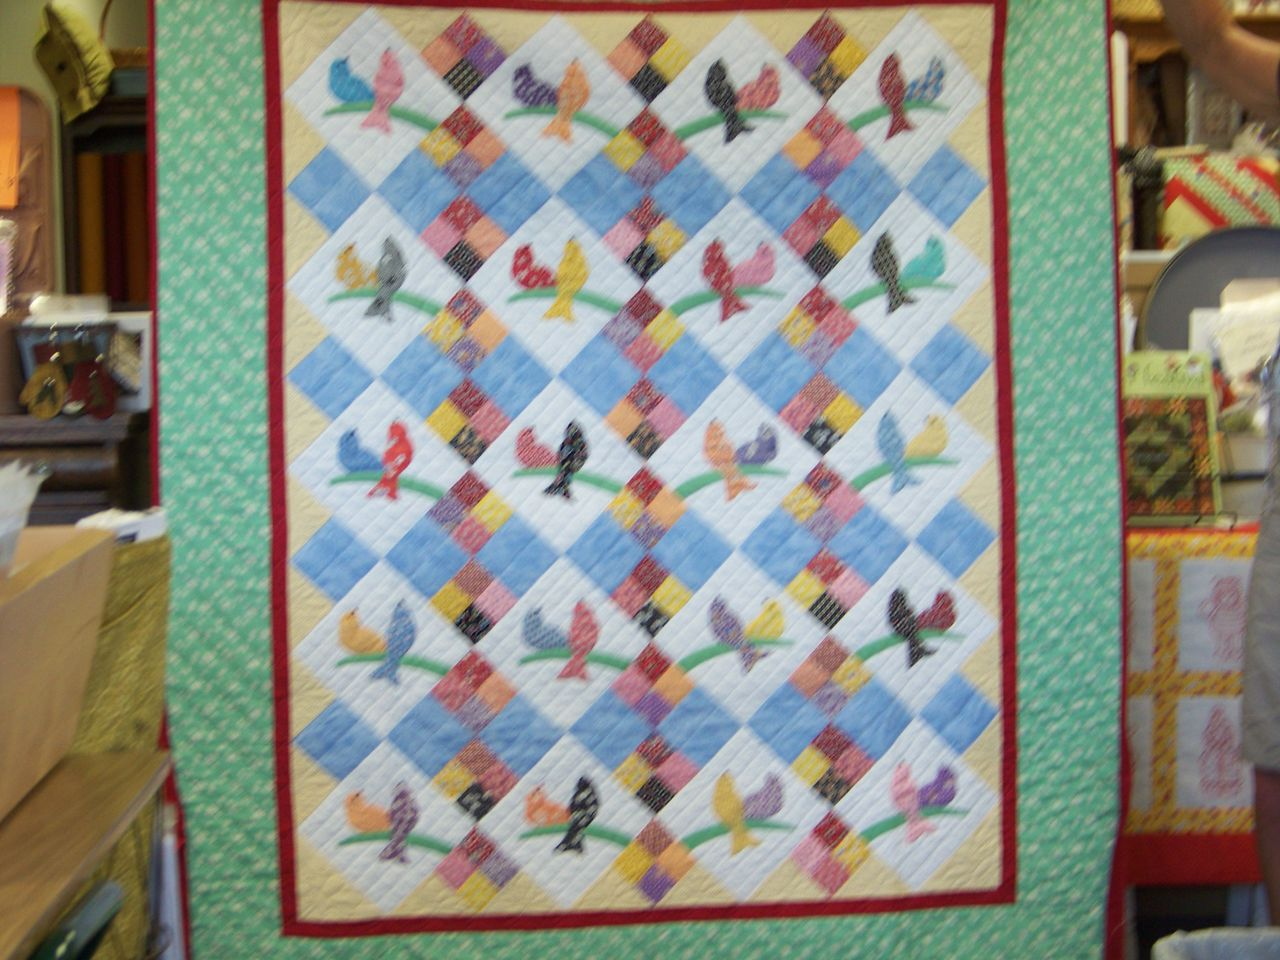 Attic window quilt shop fabric quilts kits books etc for Window quilt